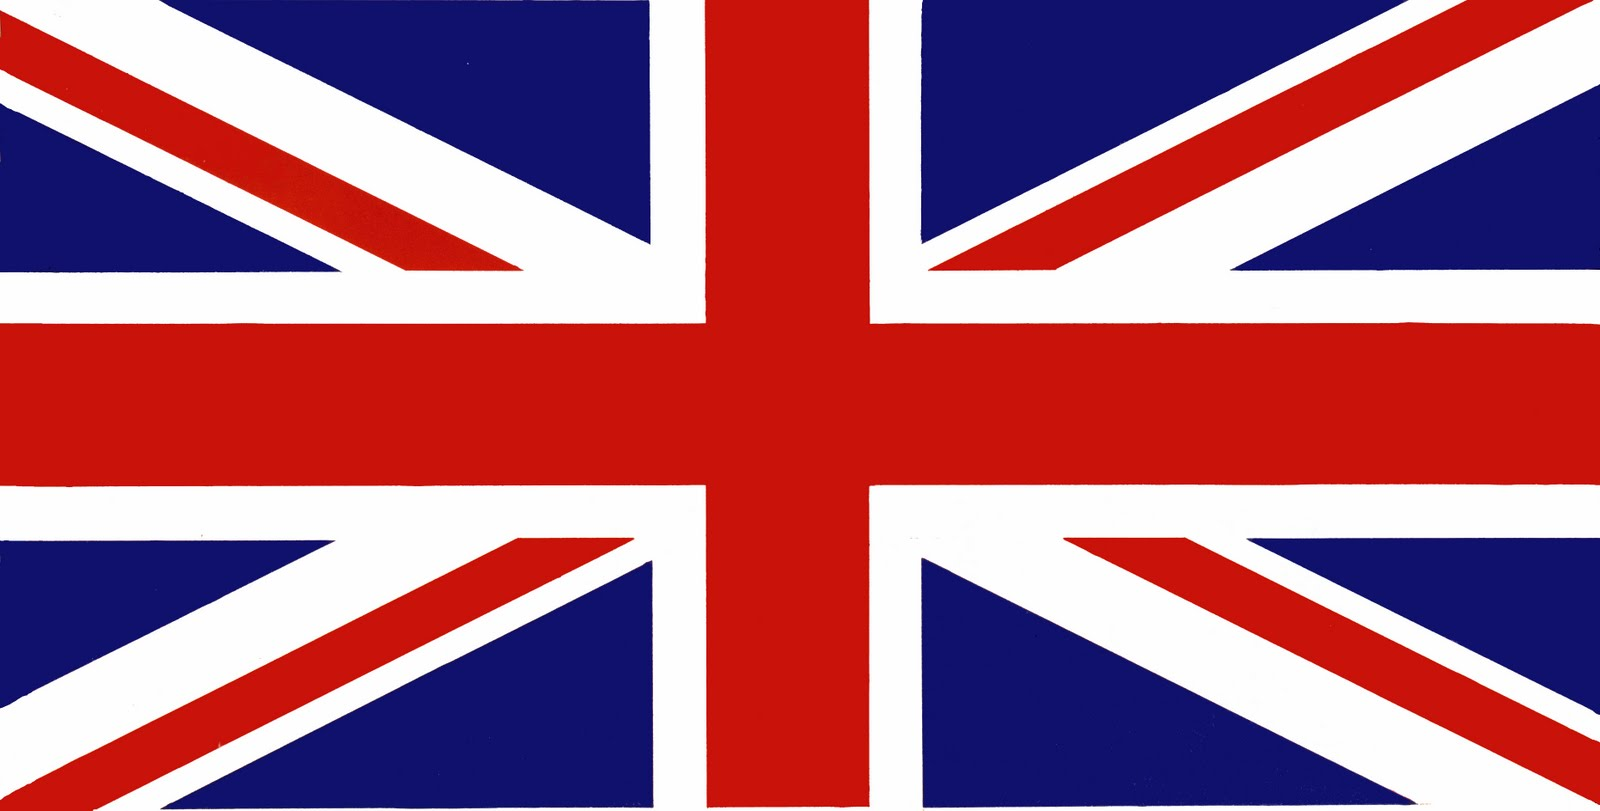 British flag free clipart jpg free download Vintage clip art british flag the graphics fairy - Cliparting.com jpg free download